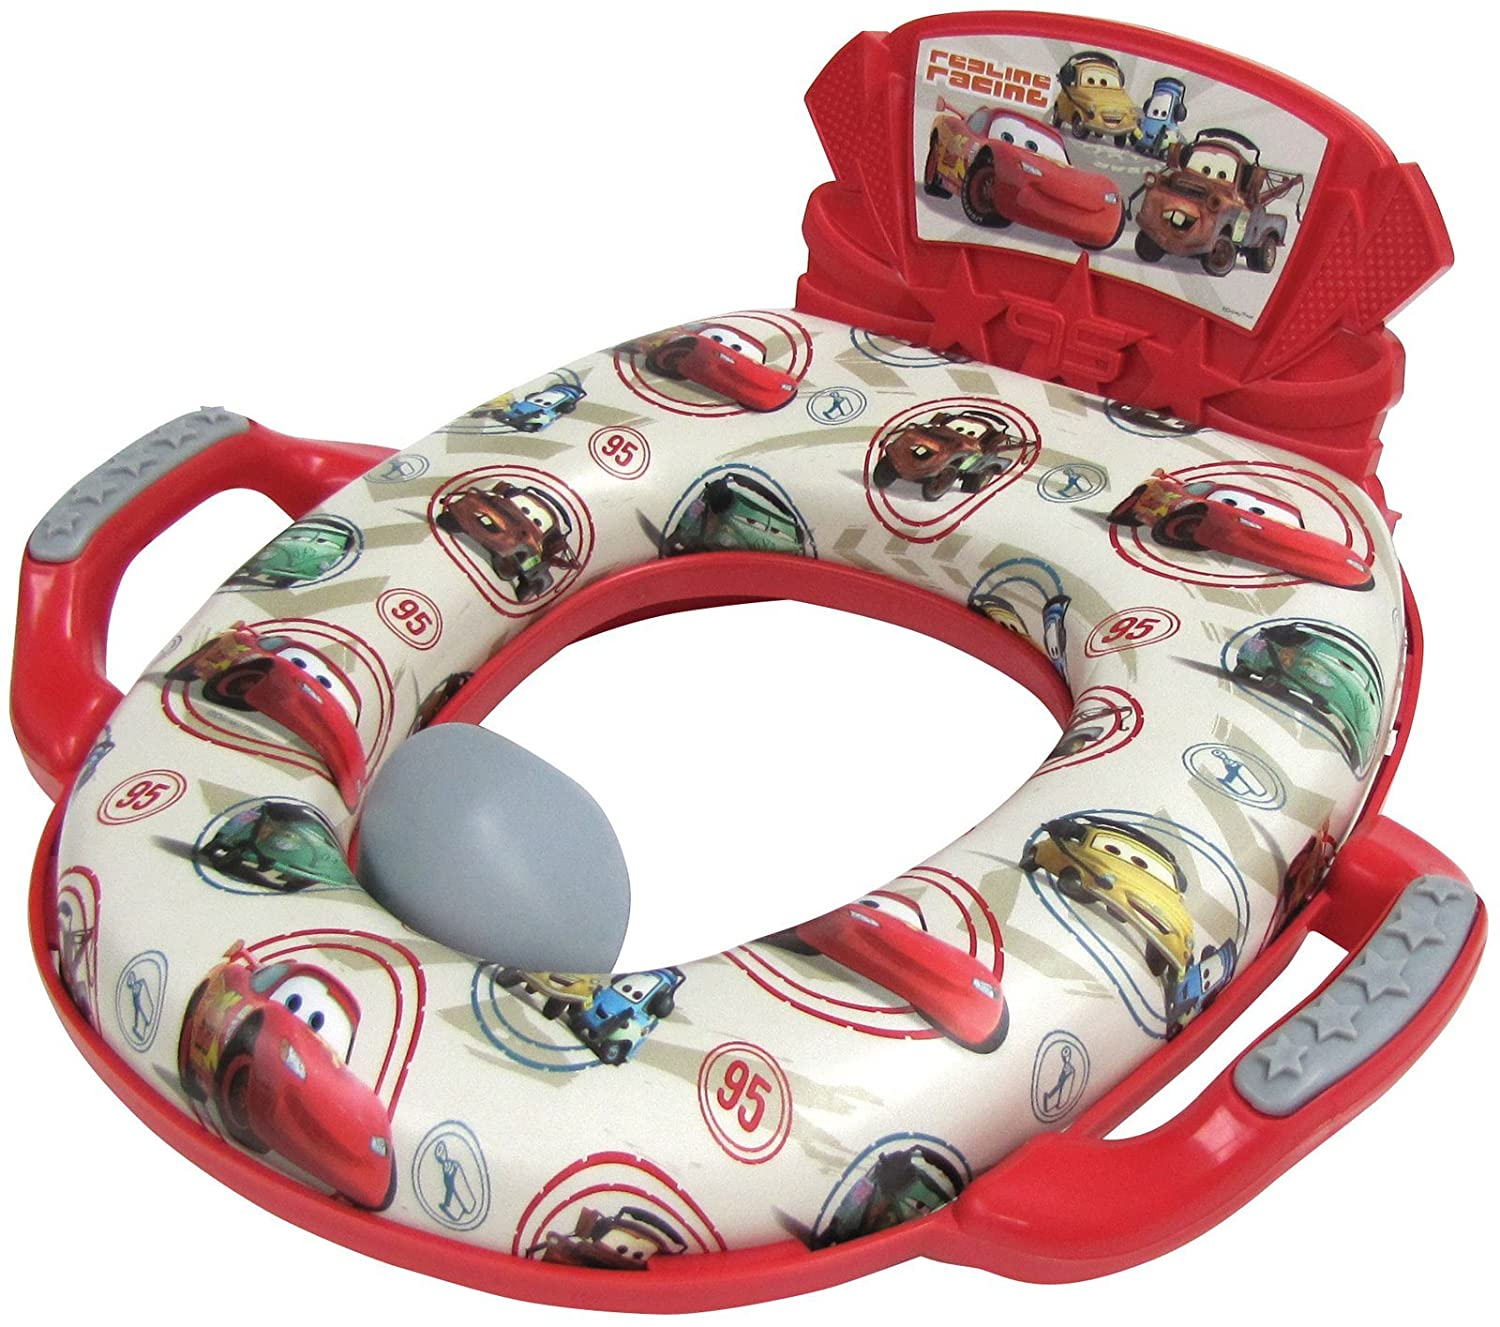 Disney Cars Deluxe Potty Seat with Sound